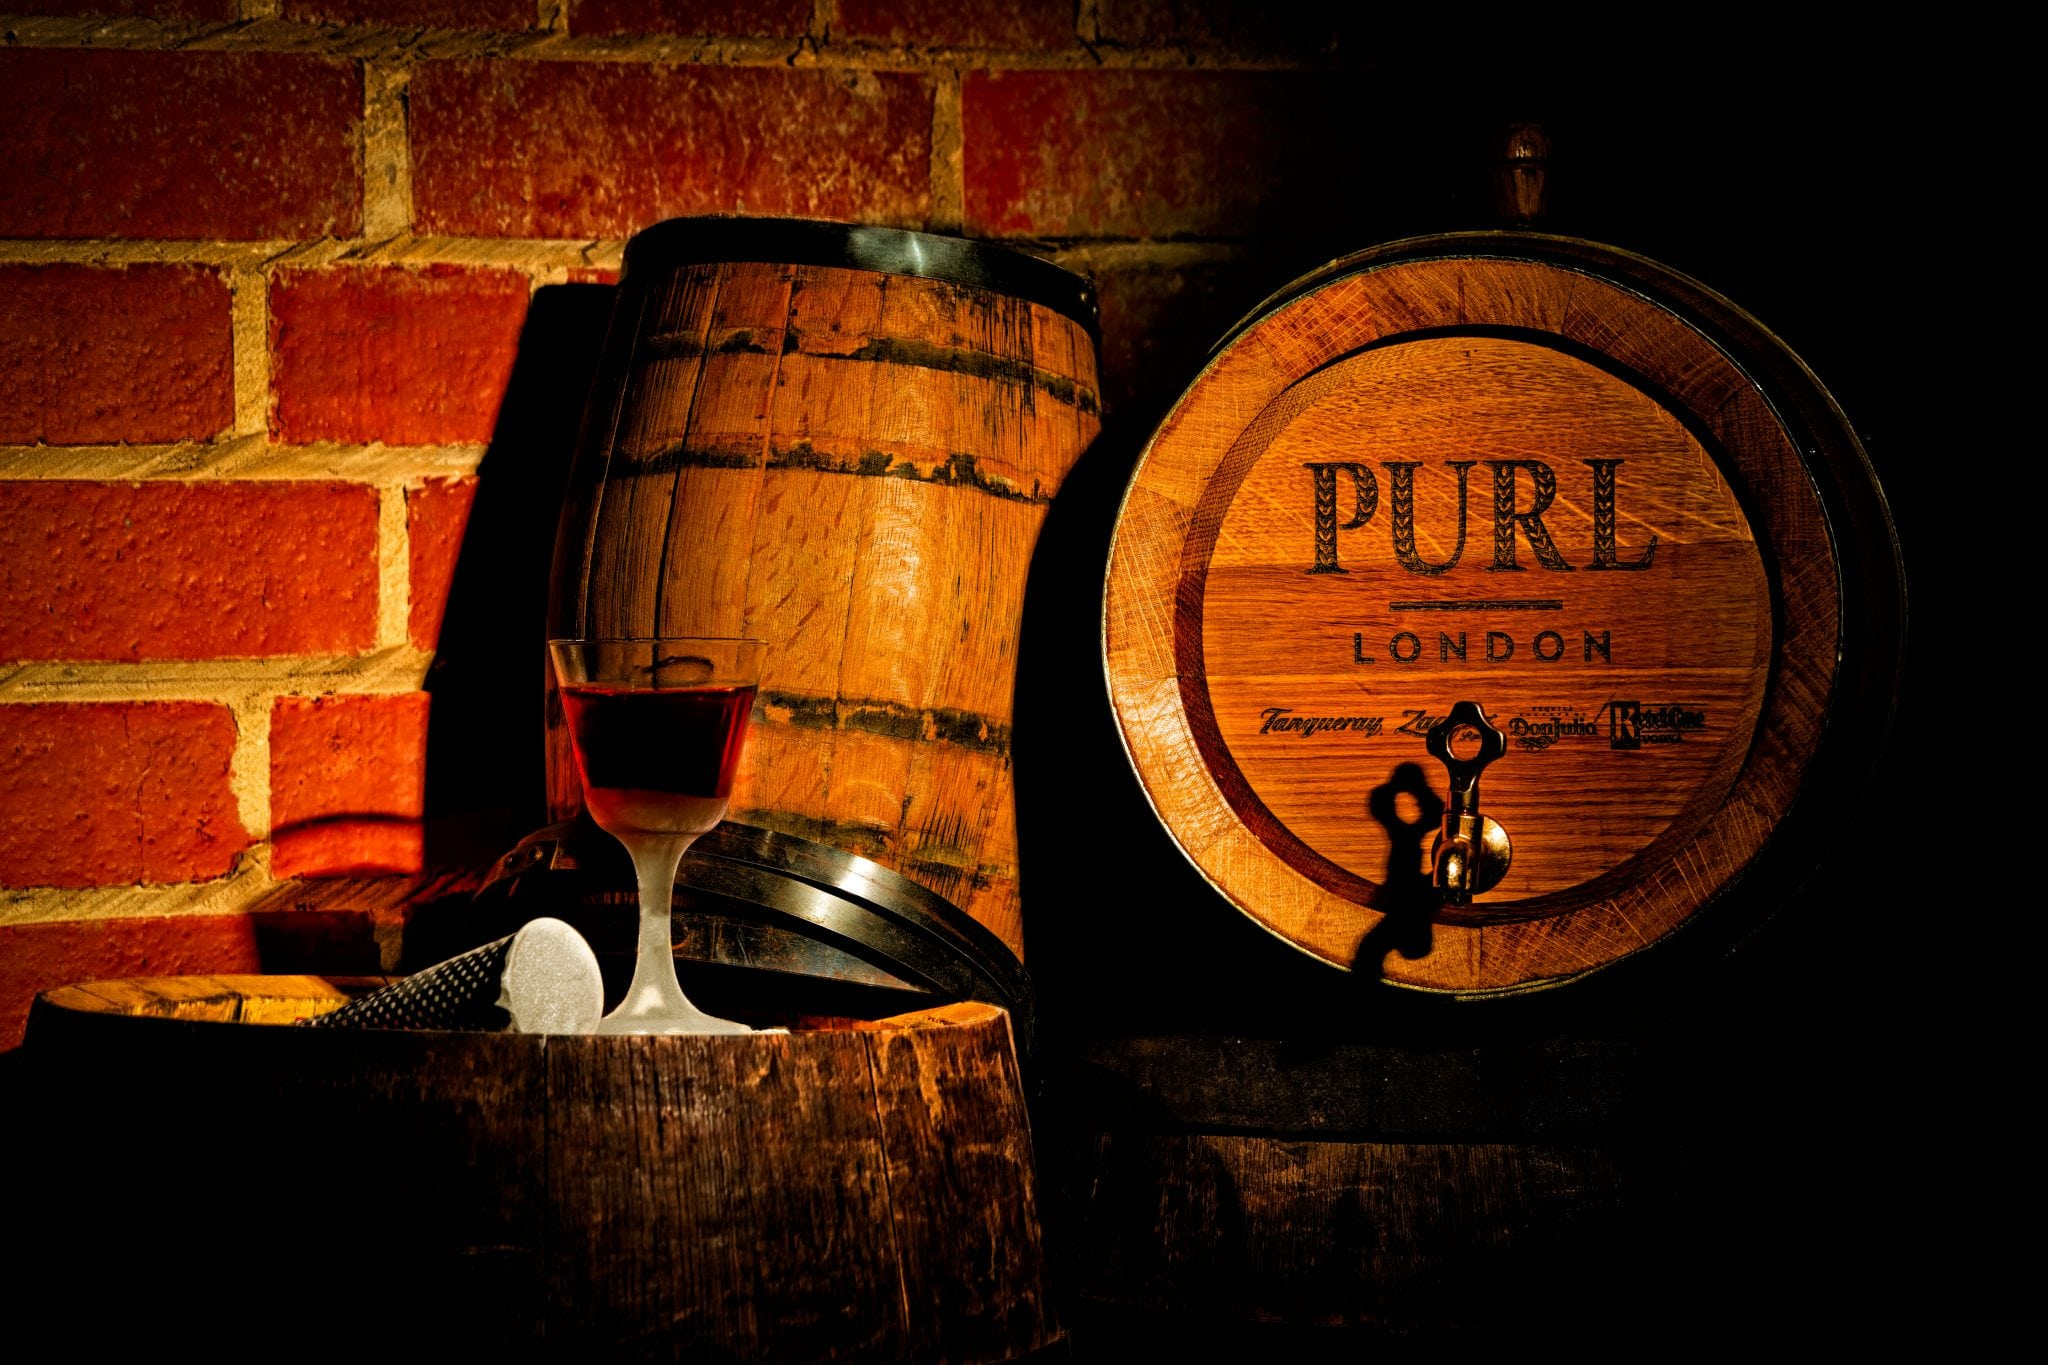 Purl logo on barrel